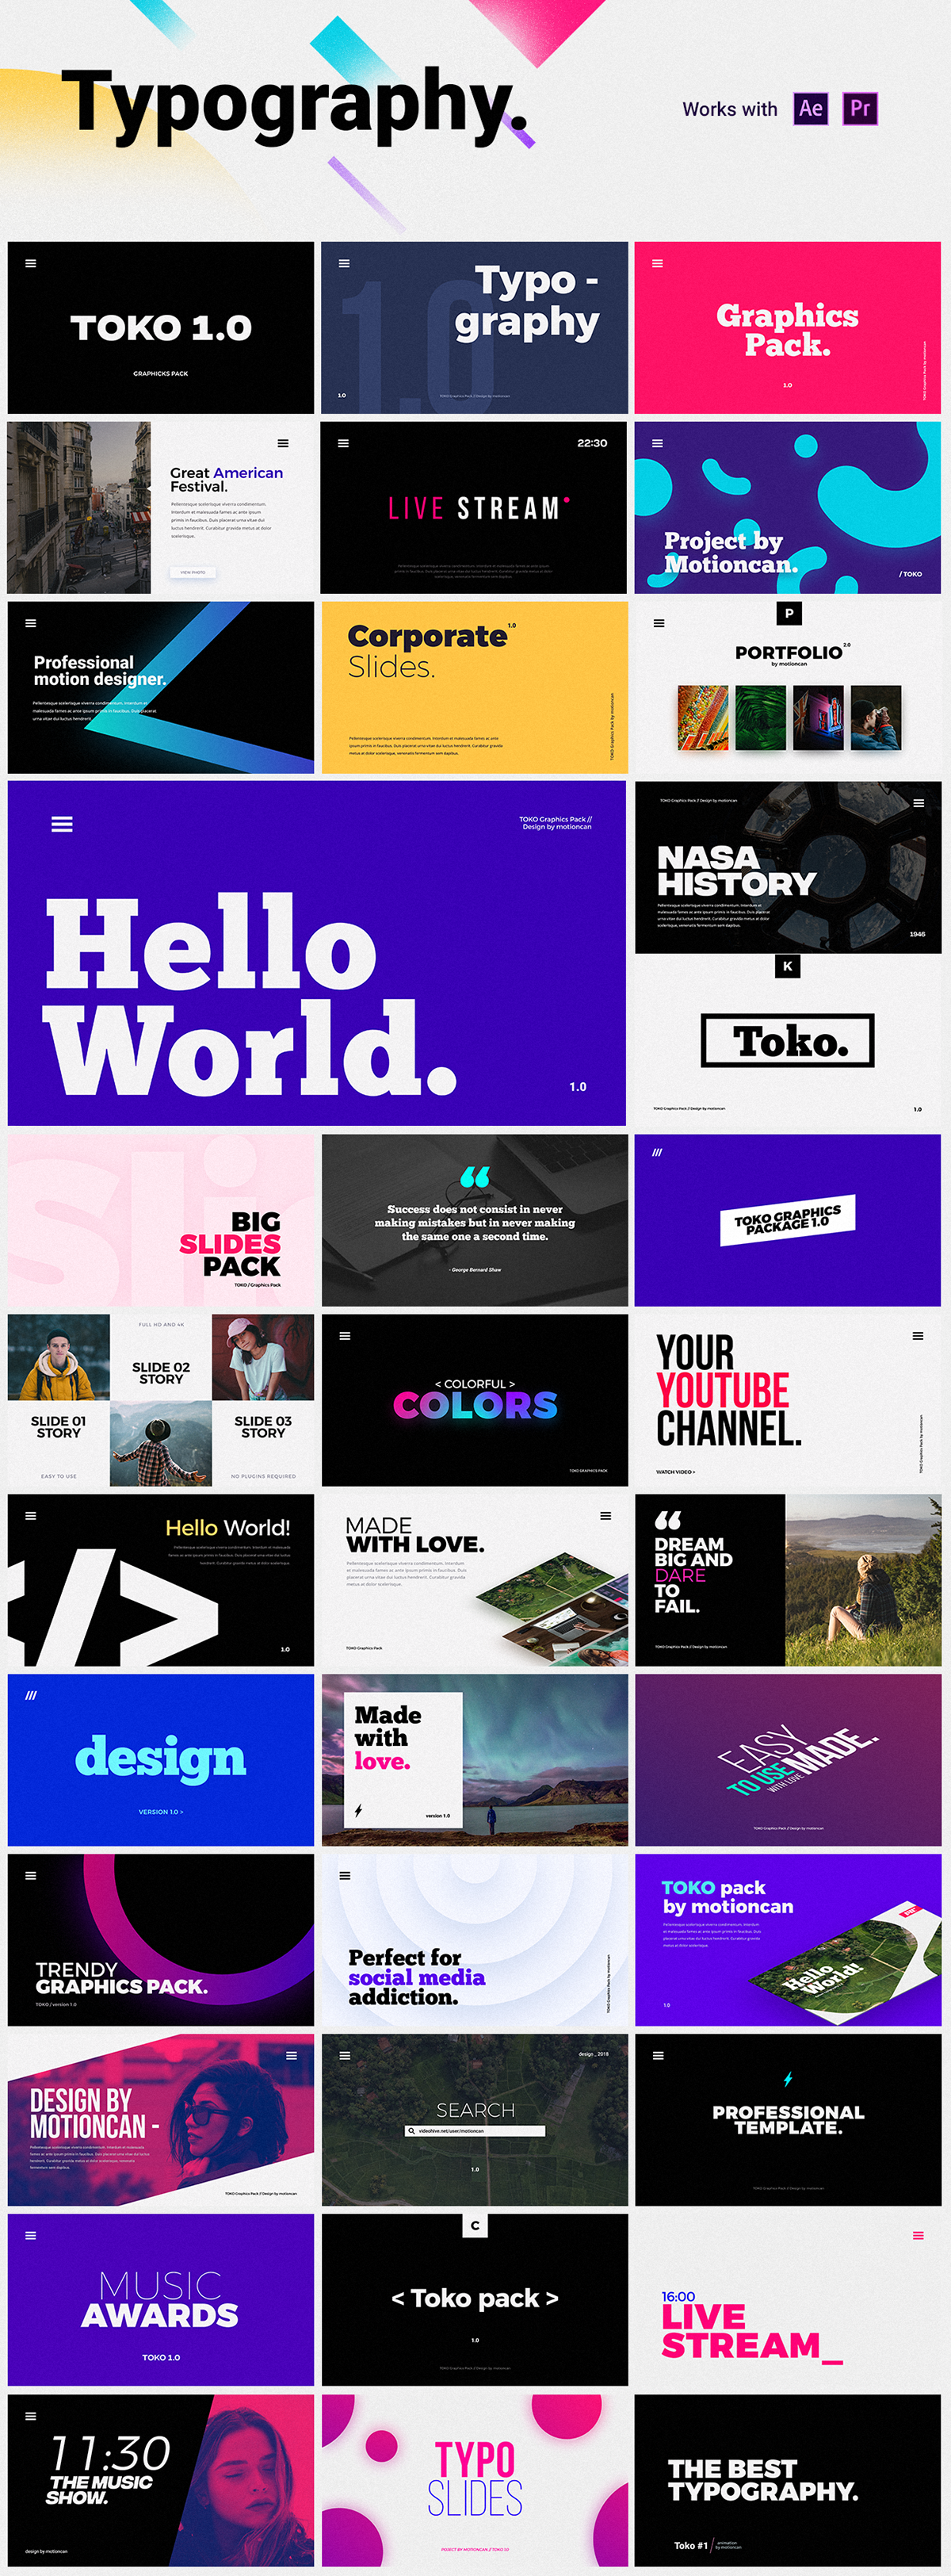 750+ Graphics Pack for After Effects and Premiere Pro on Behance